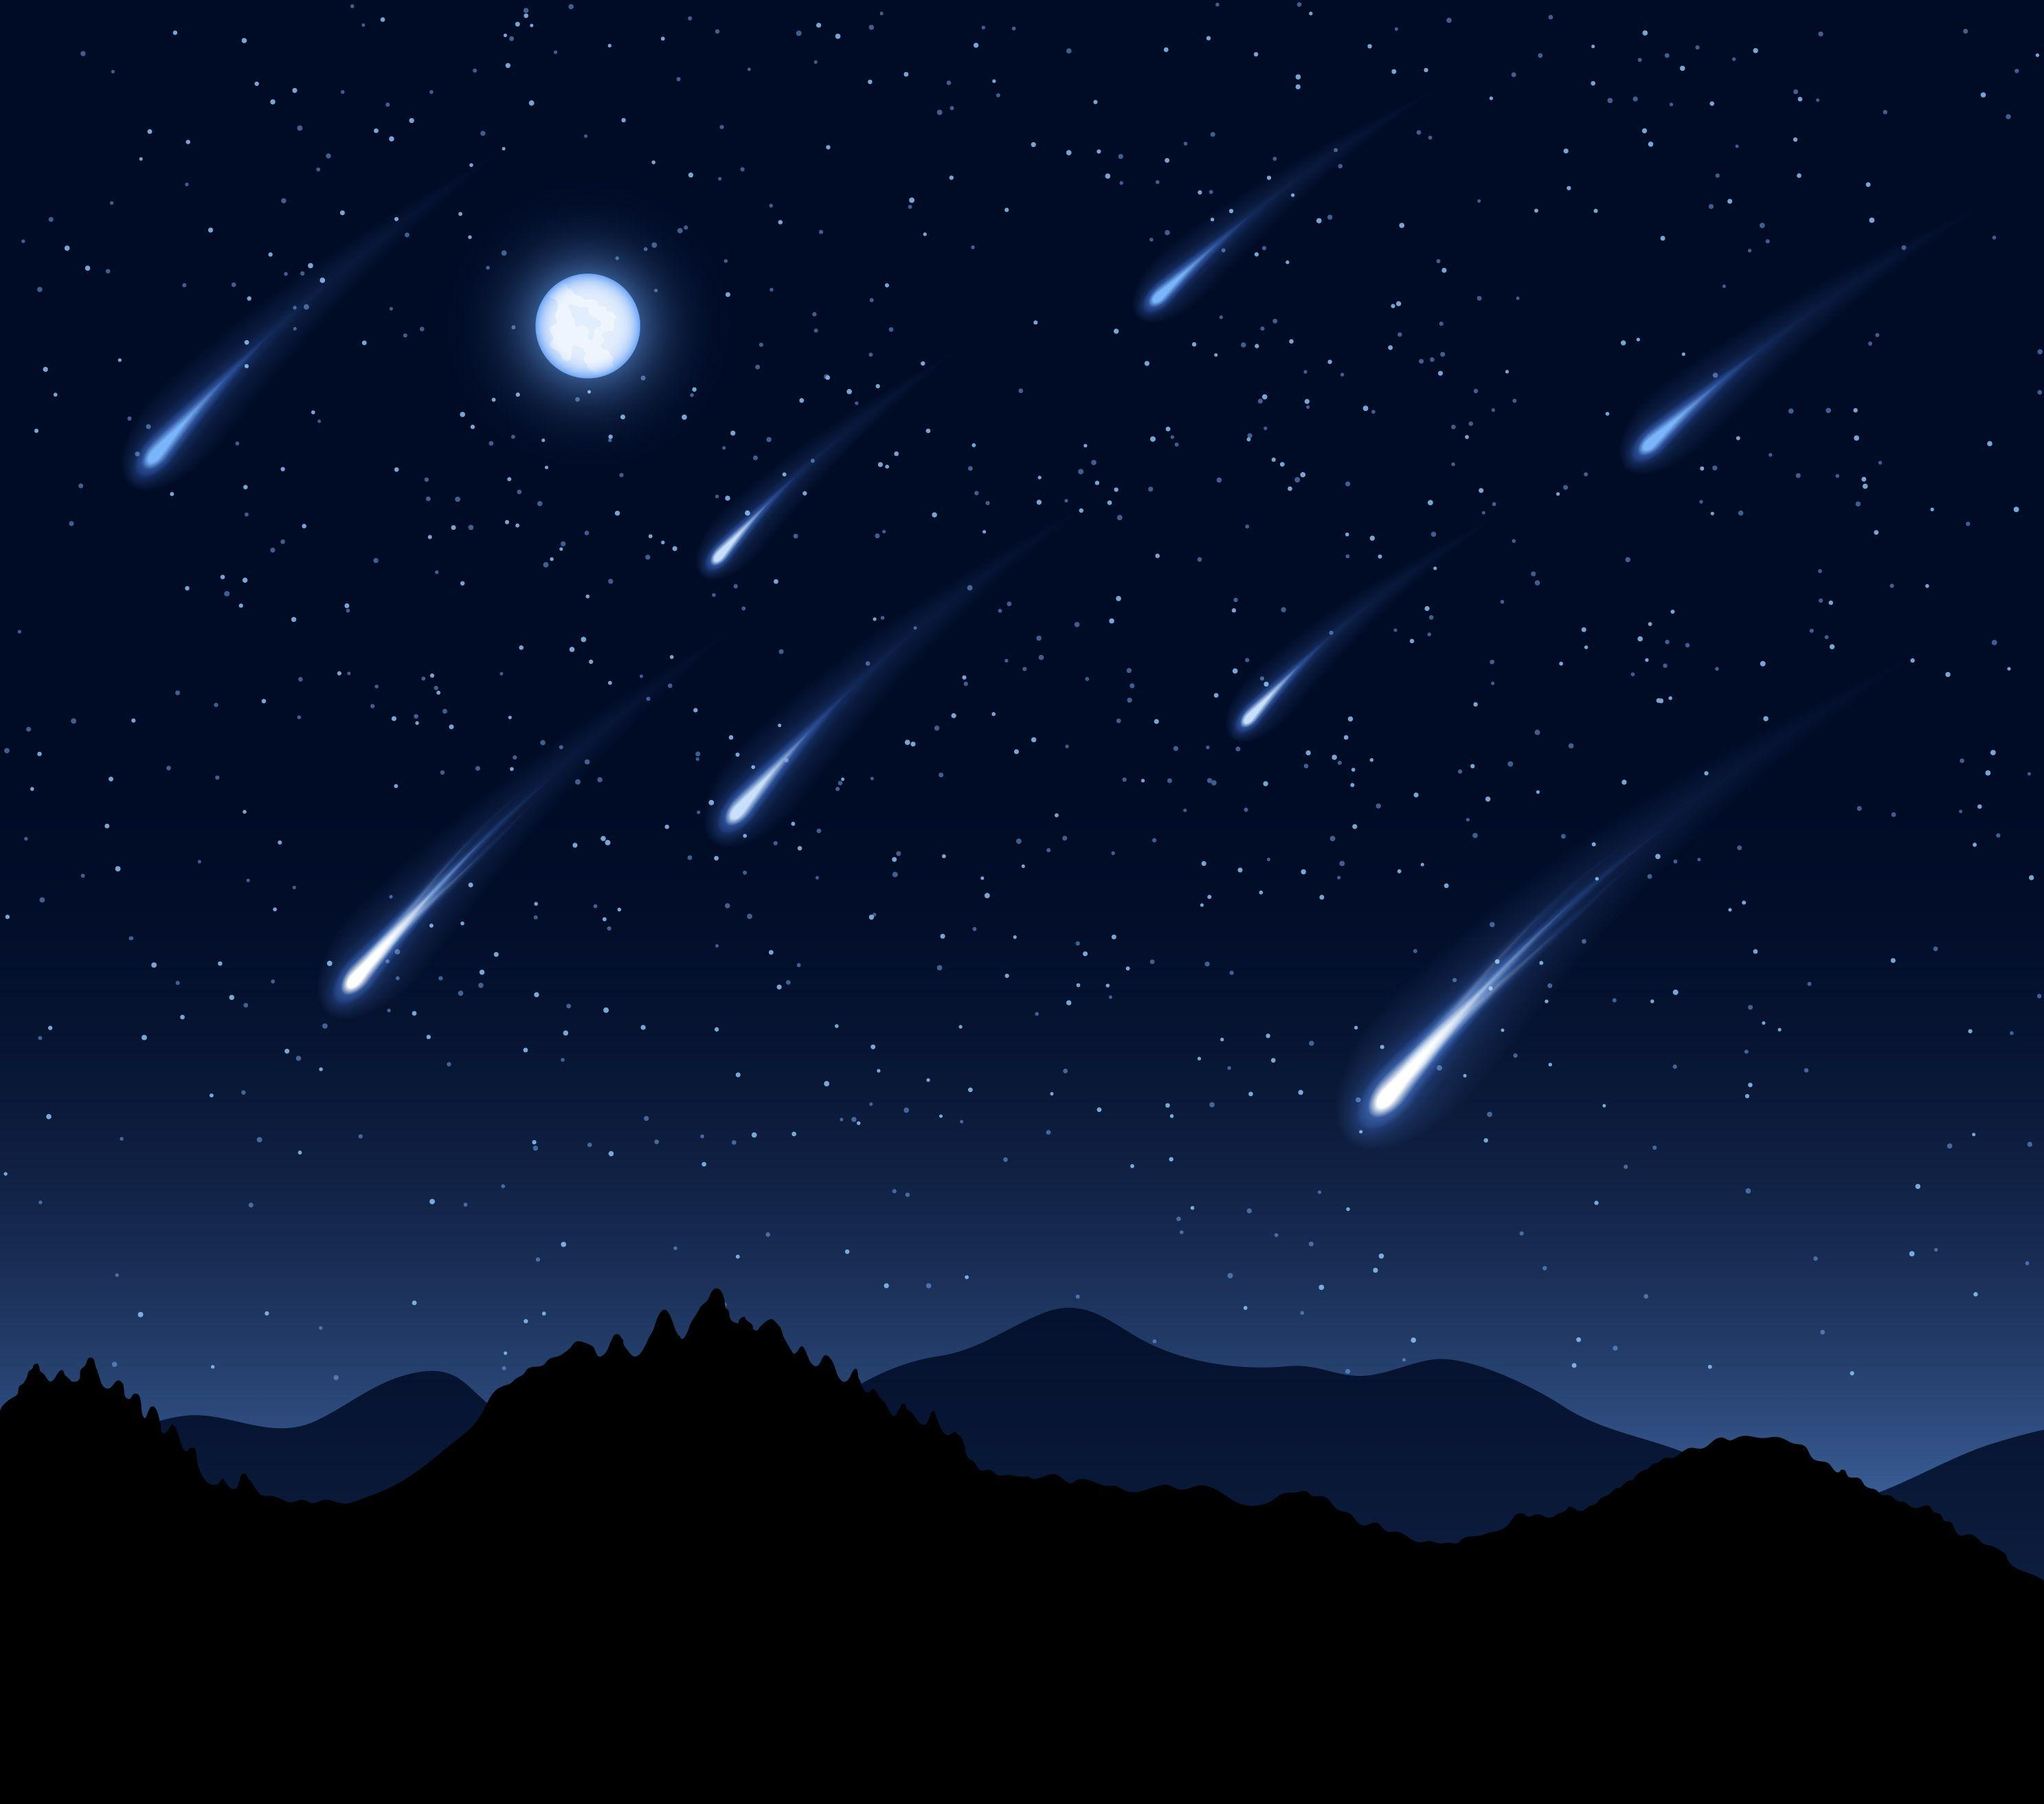 Perseid Meteor Shower Wallpaper - wallpaper.